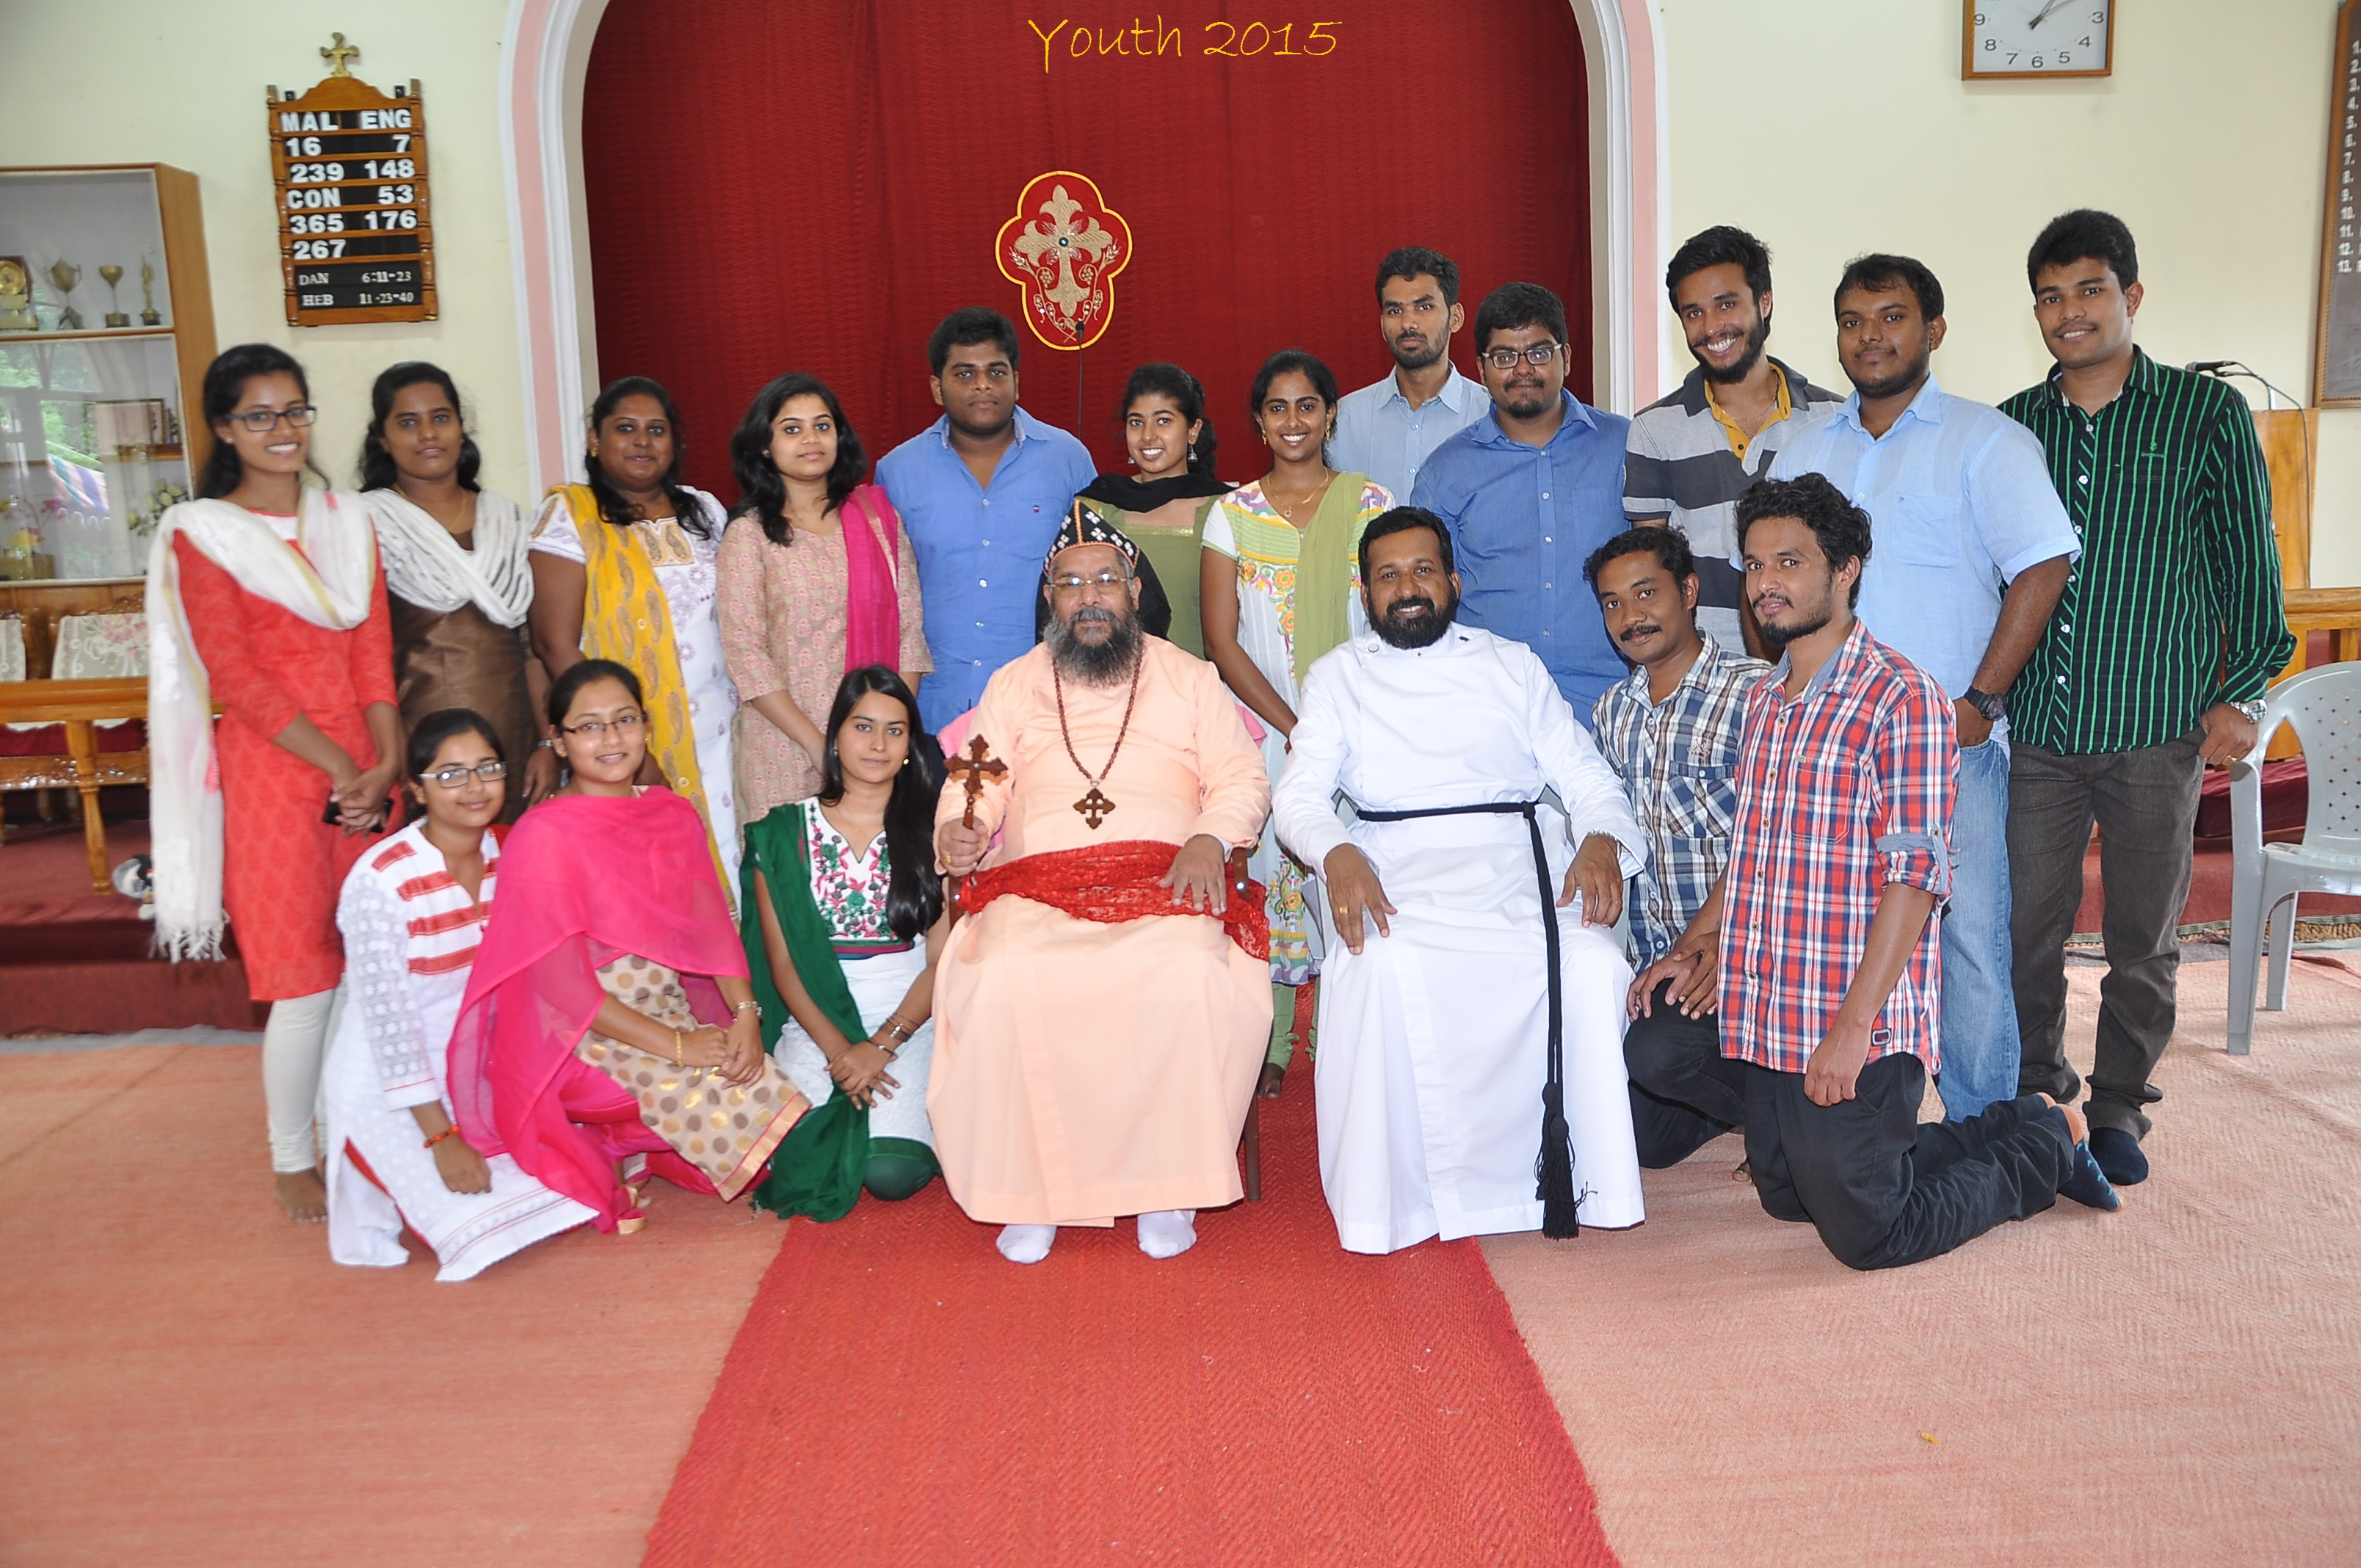 Thirumeni with Church Youth 2015